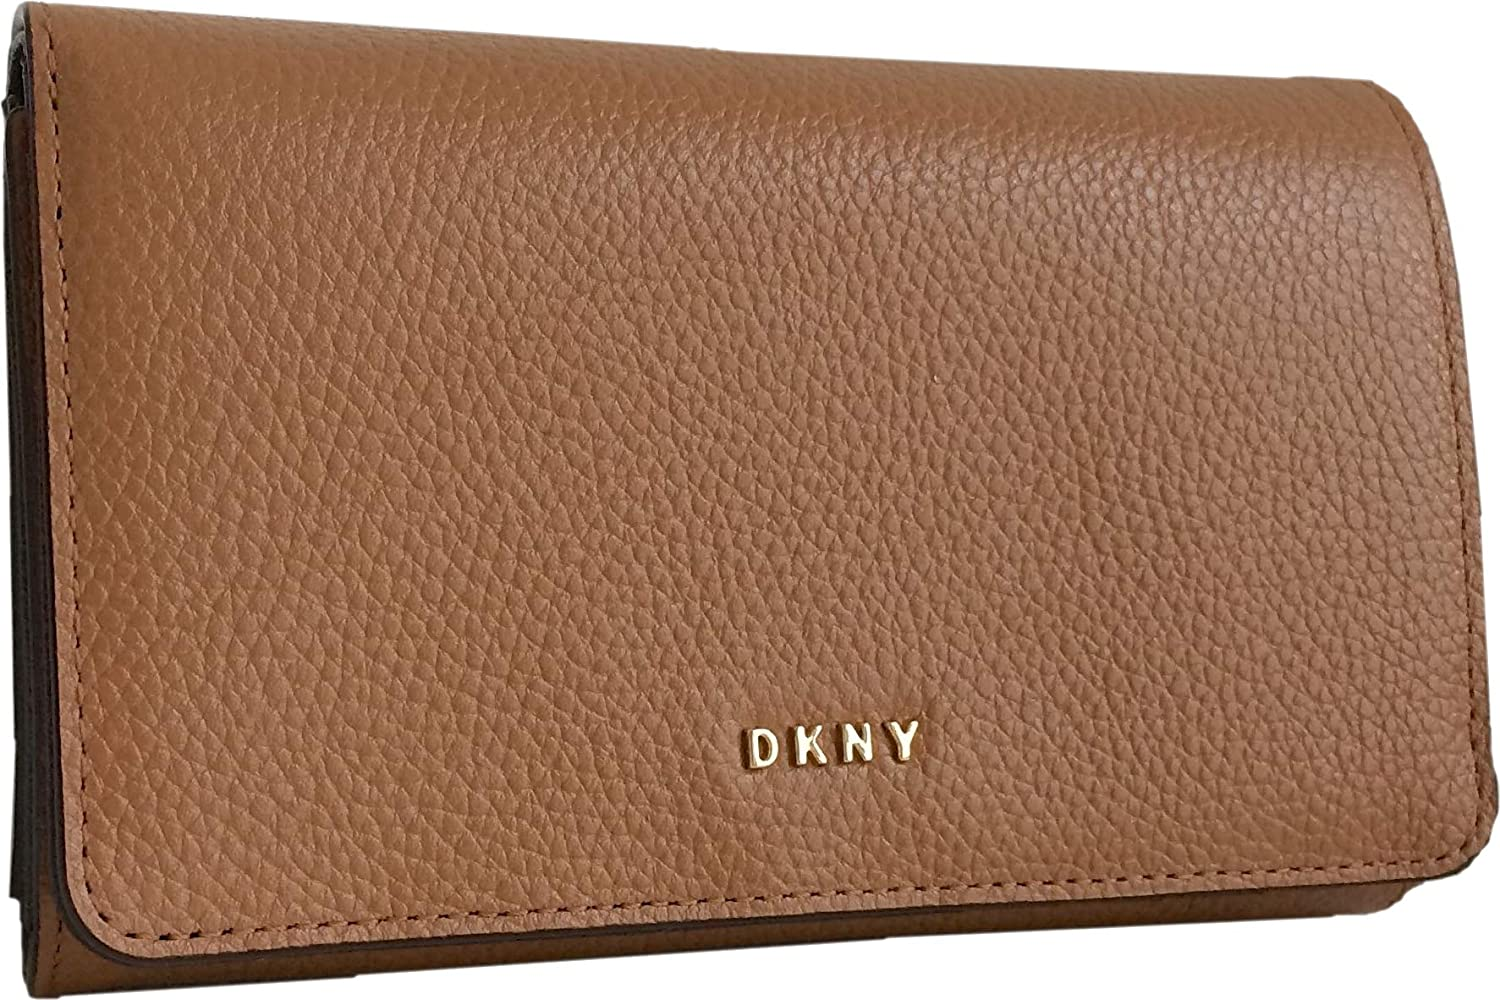 DKNY - Bolso Bandolera Mujer Marrón marrón Medium: Amazon.es ...